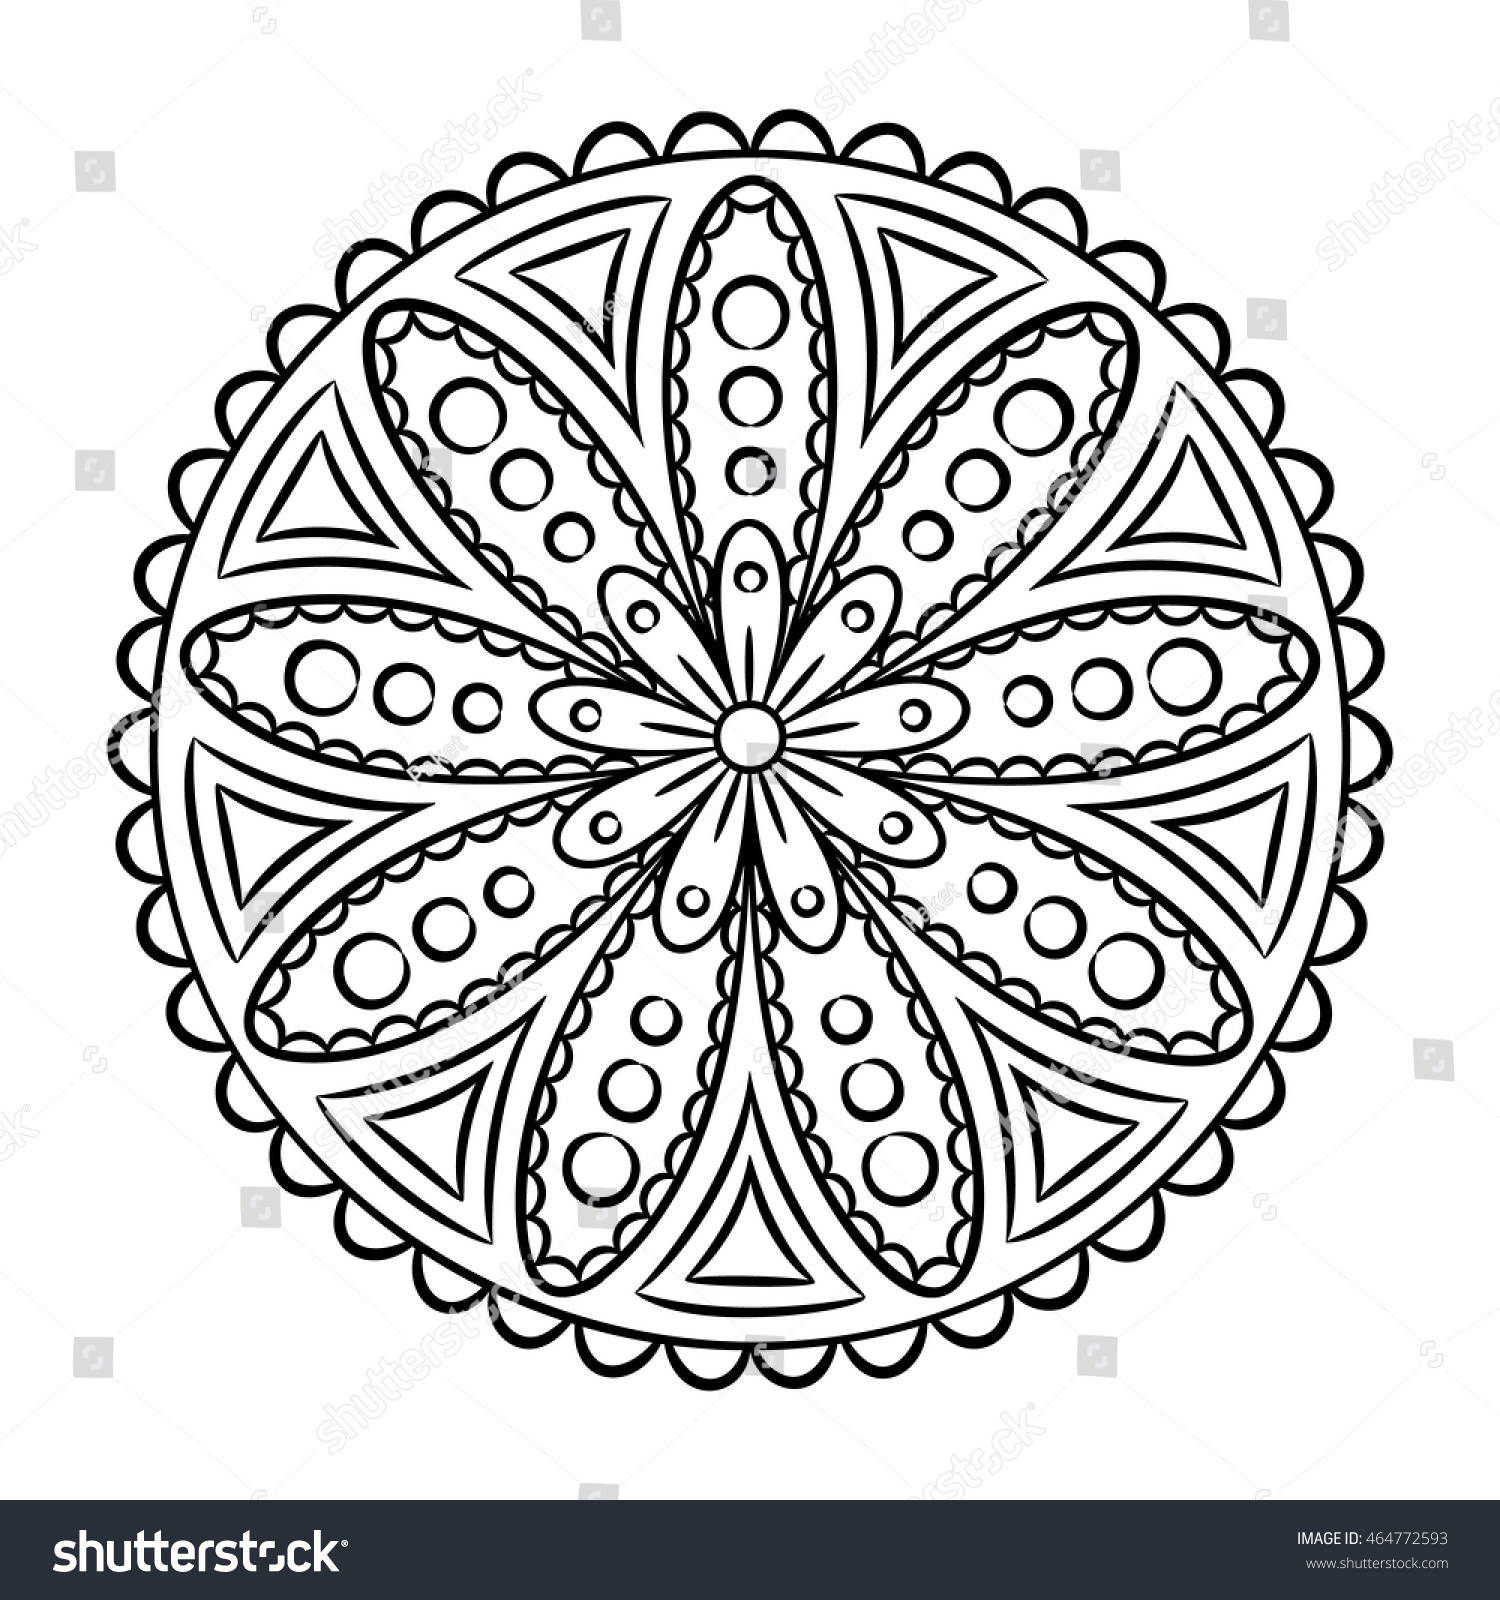 Doodle Mandala Coloring Page Outline Floral Stock Vector